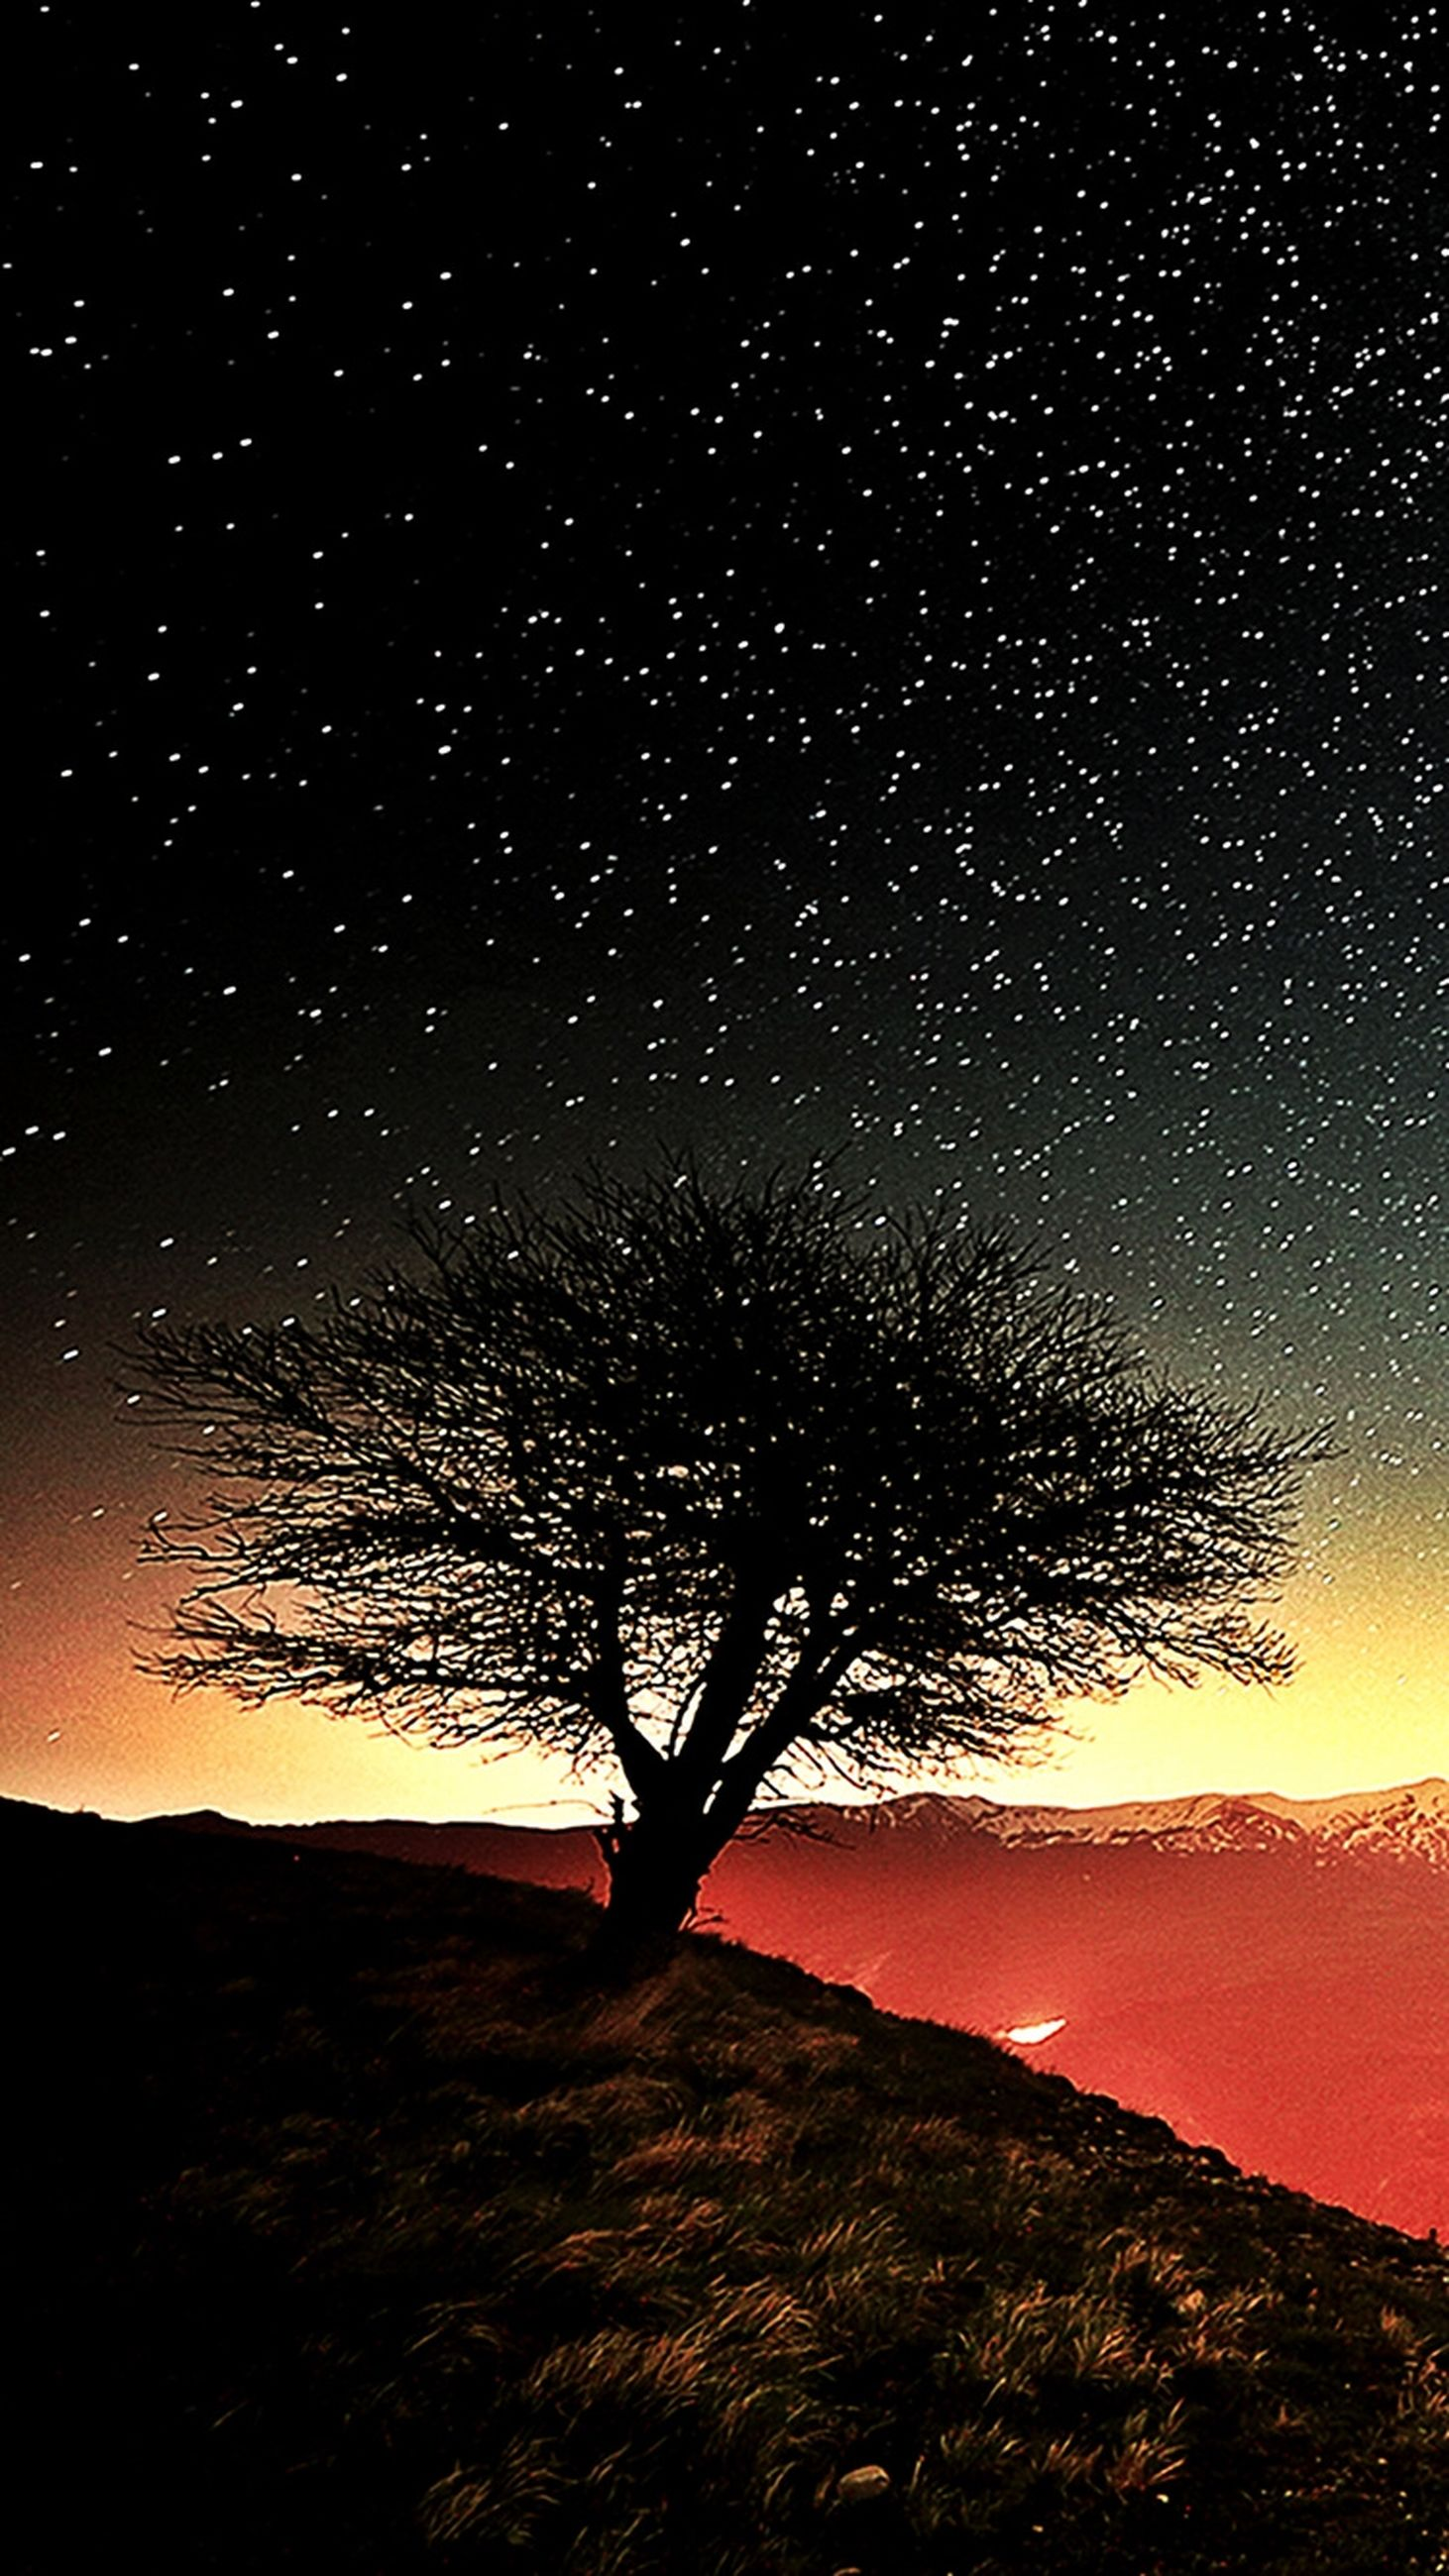 night, silhouette, tree, sky, scenics, landscape, tranquil scene, tranquility, low angle view, nature, beauty in nature, dark, star - space, field, astronomy, bare tree, idyllic, dusk, outdoors, star field